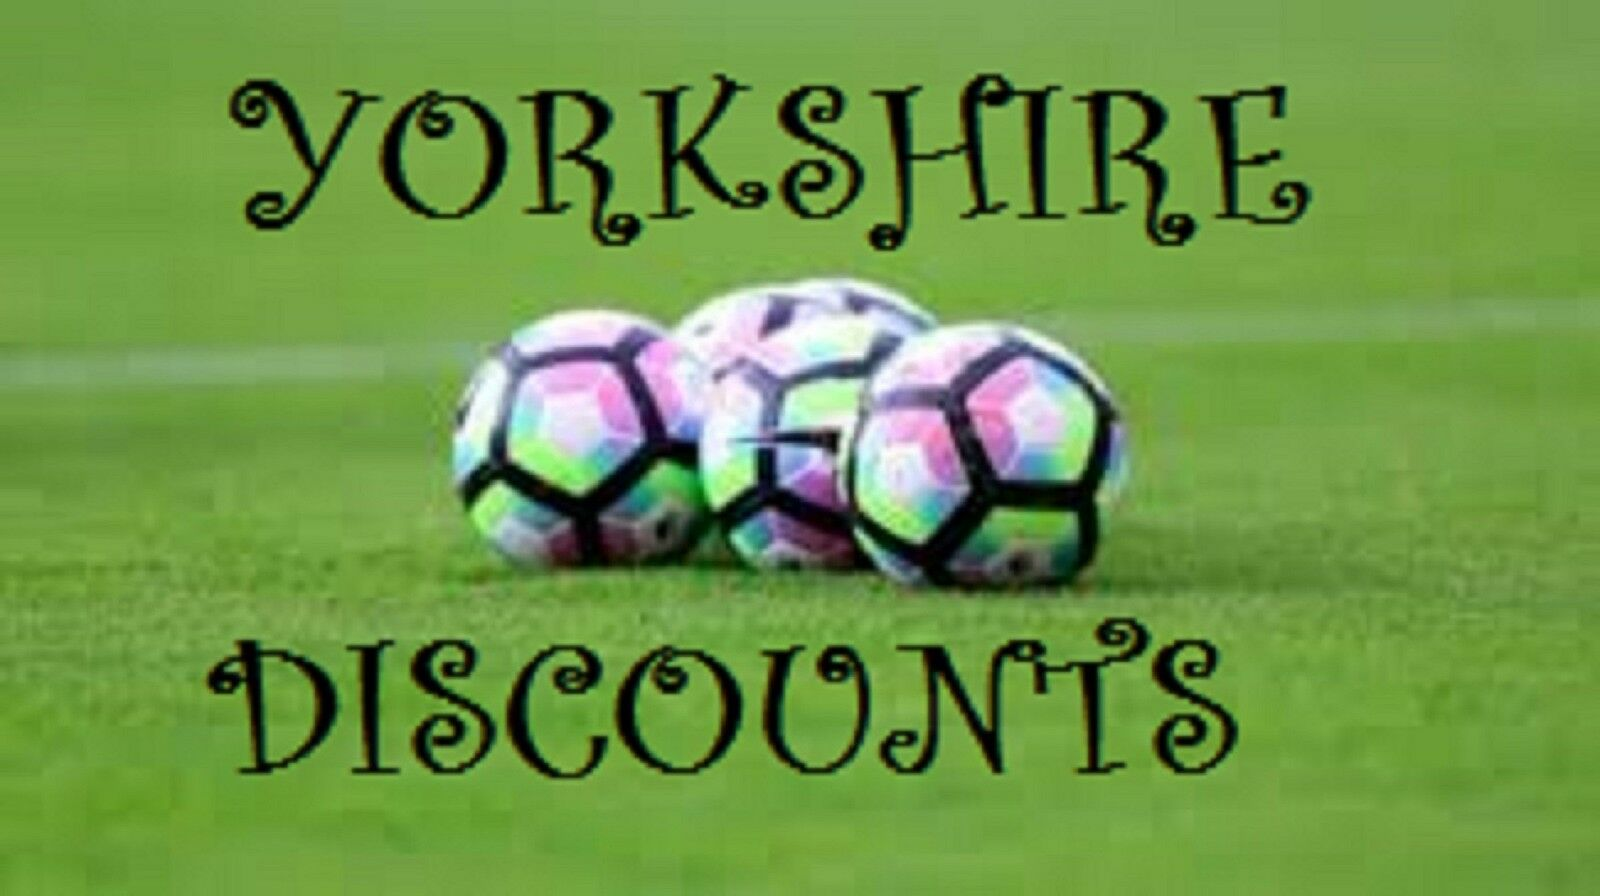 Yorkshire-discounts